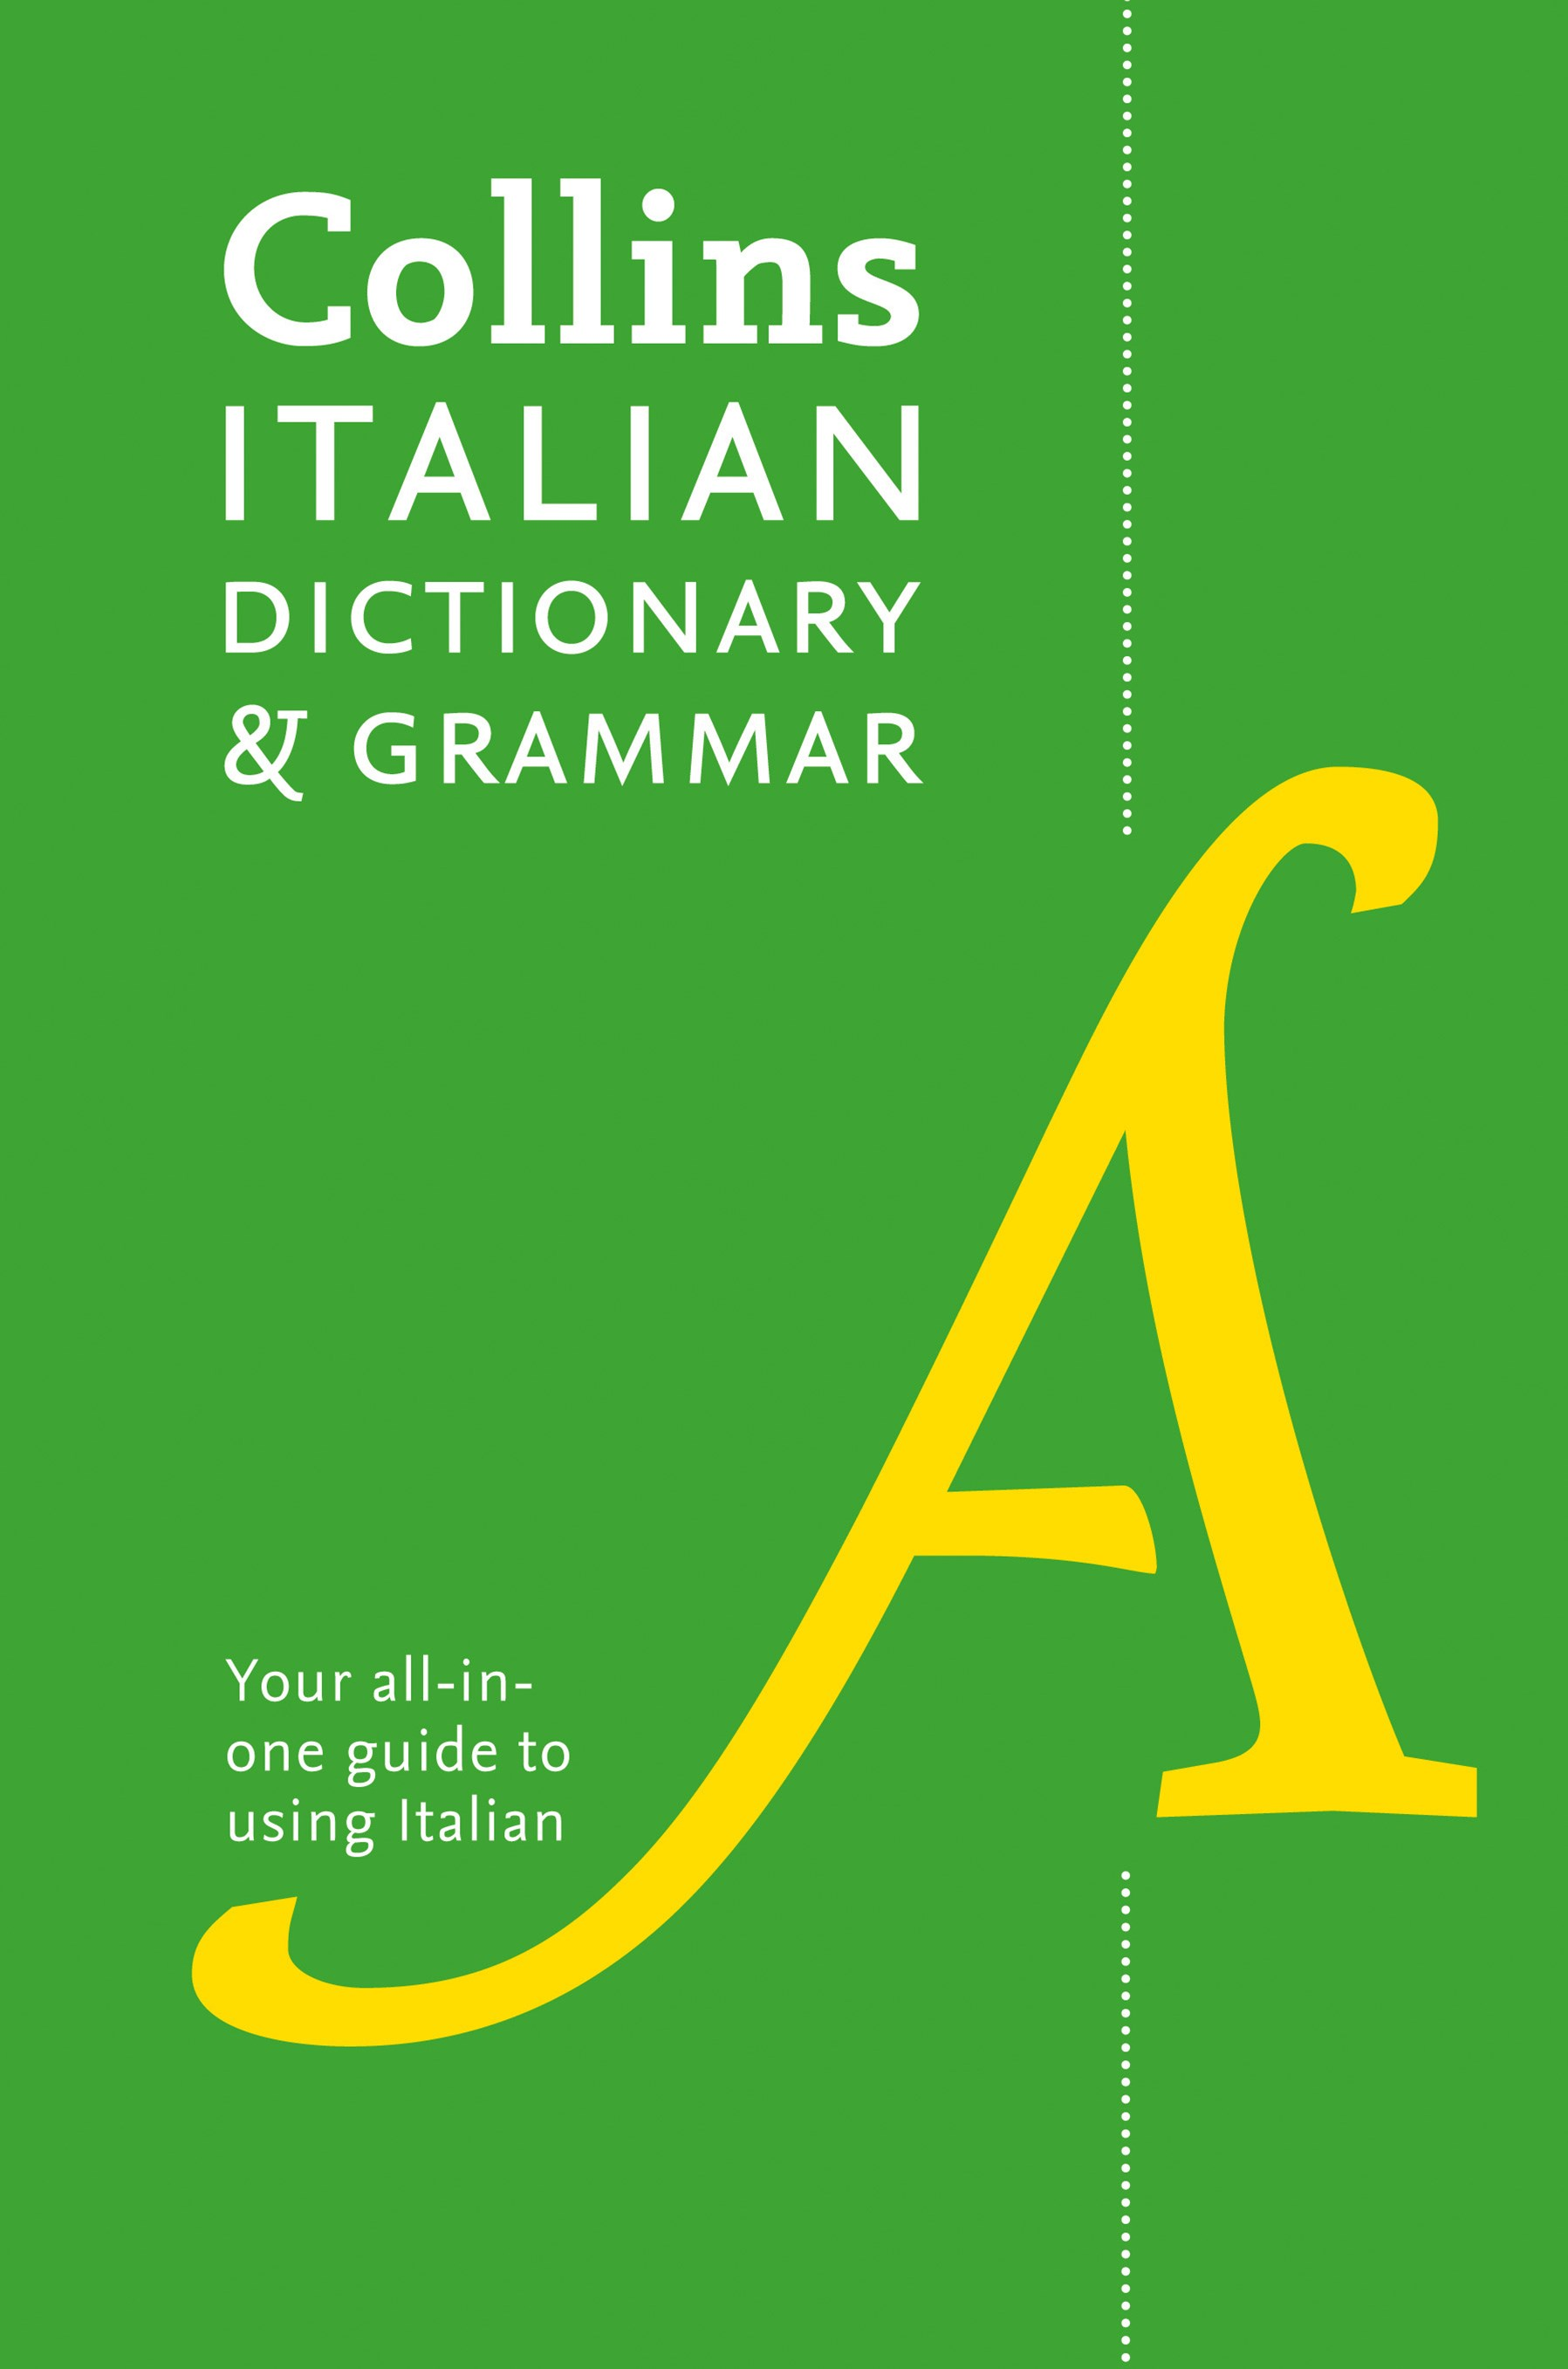 Collins Italian Dictionary and Grammar [3rd Edition]